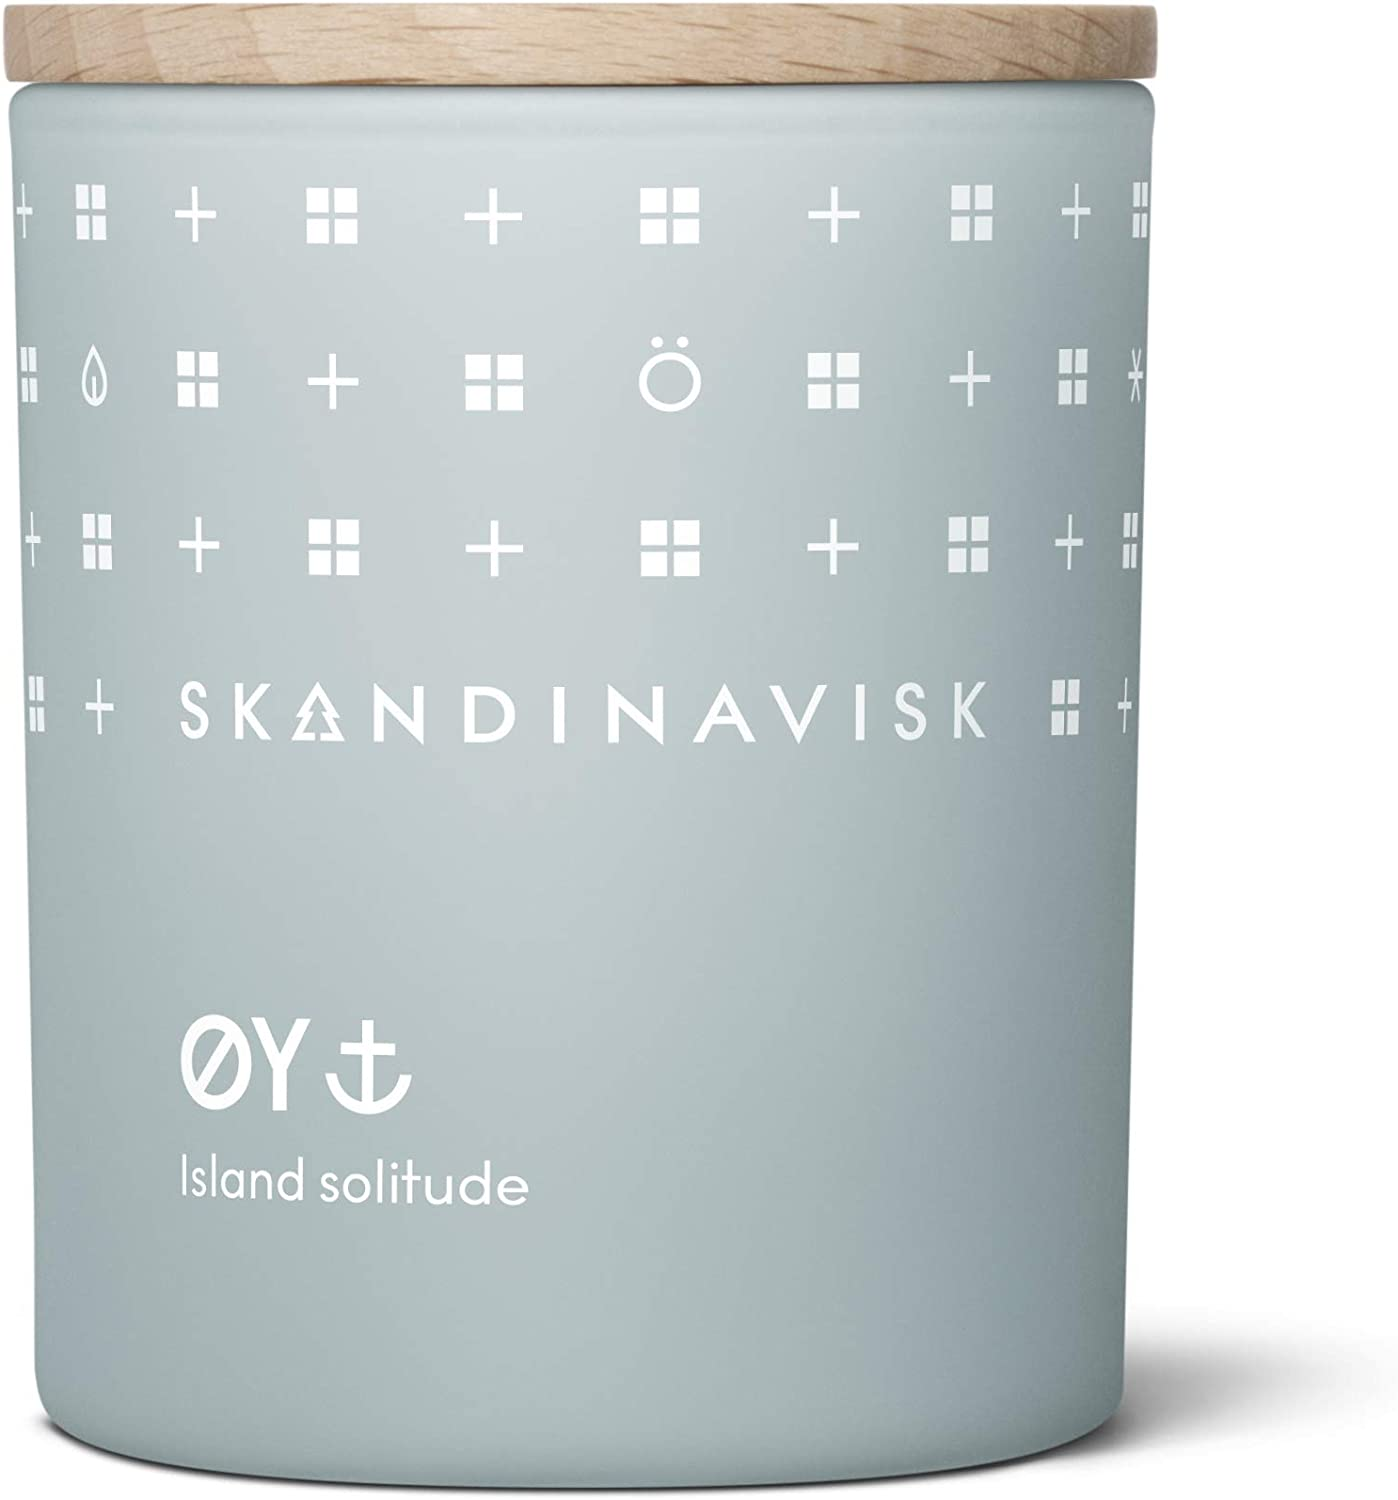 Skandinavisk ØY 'Island' Mini Scented Candle. Fragrance Notes: Crabapple and Dog Rose, Water Mosses and Green Leaves. 2.3 oz.